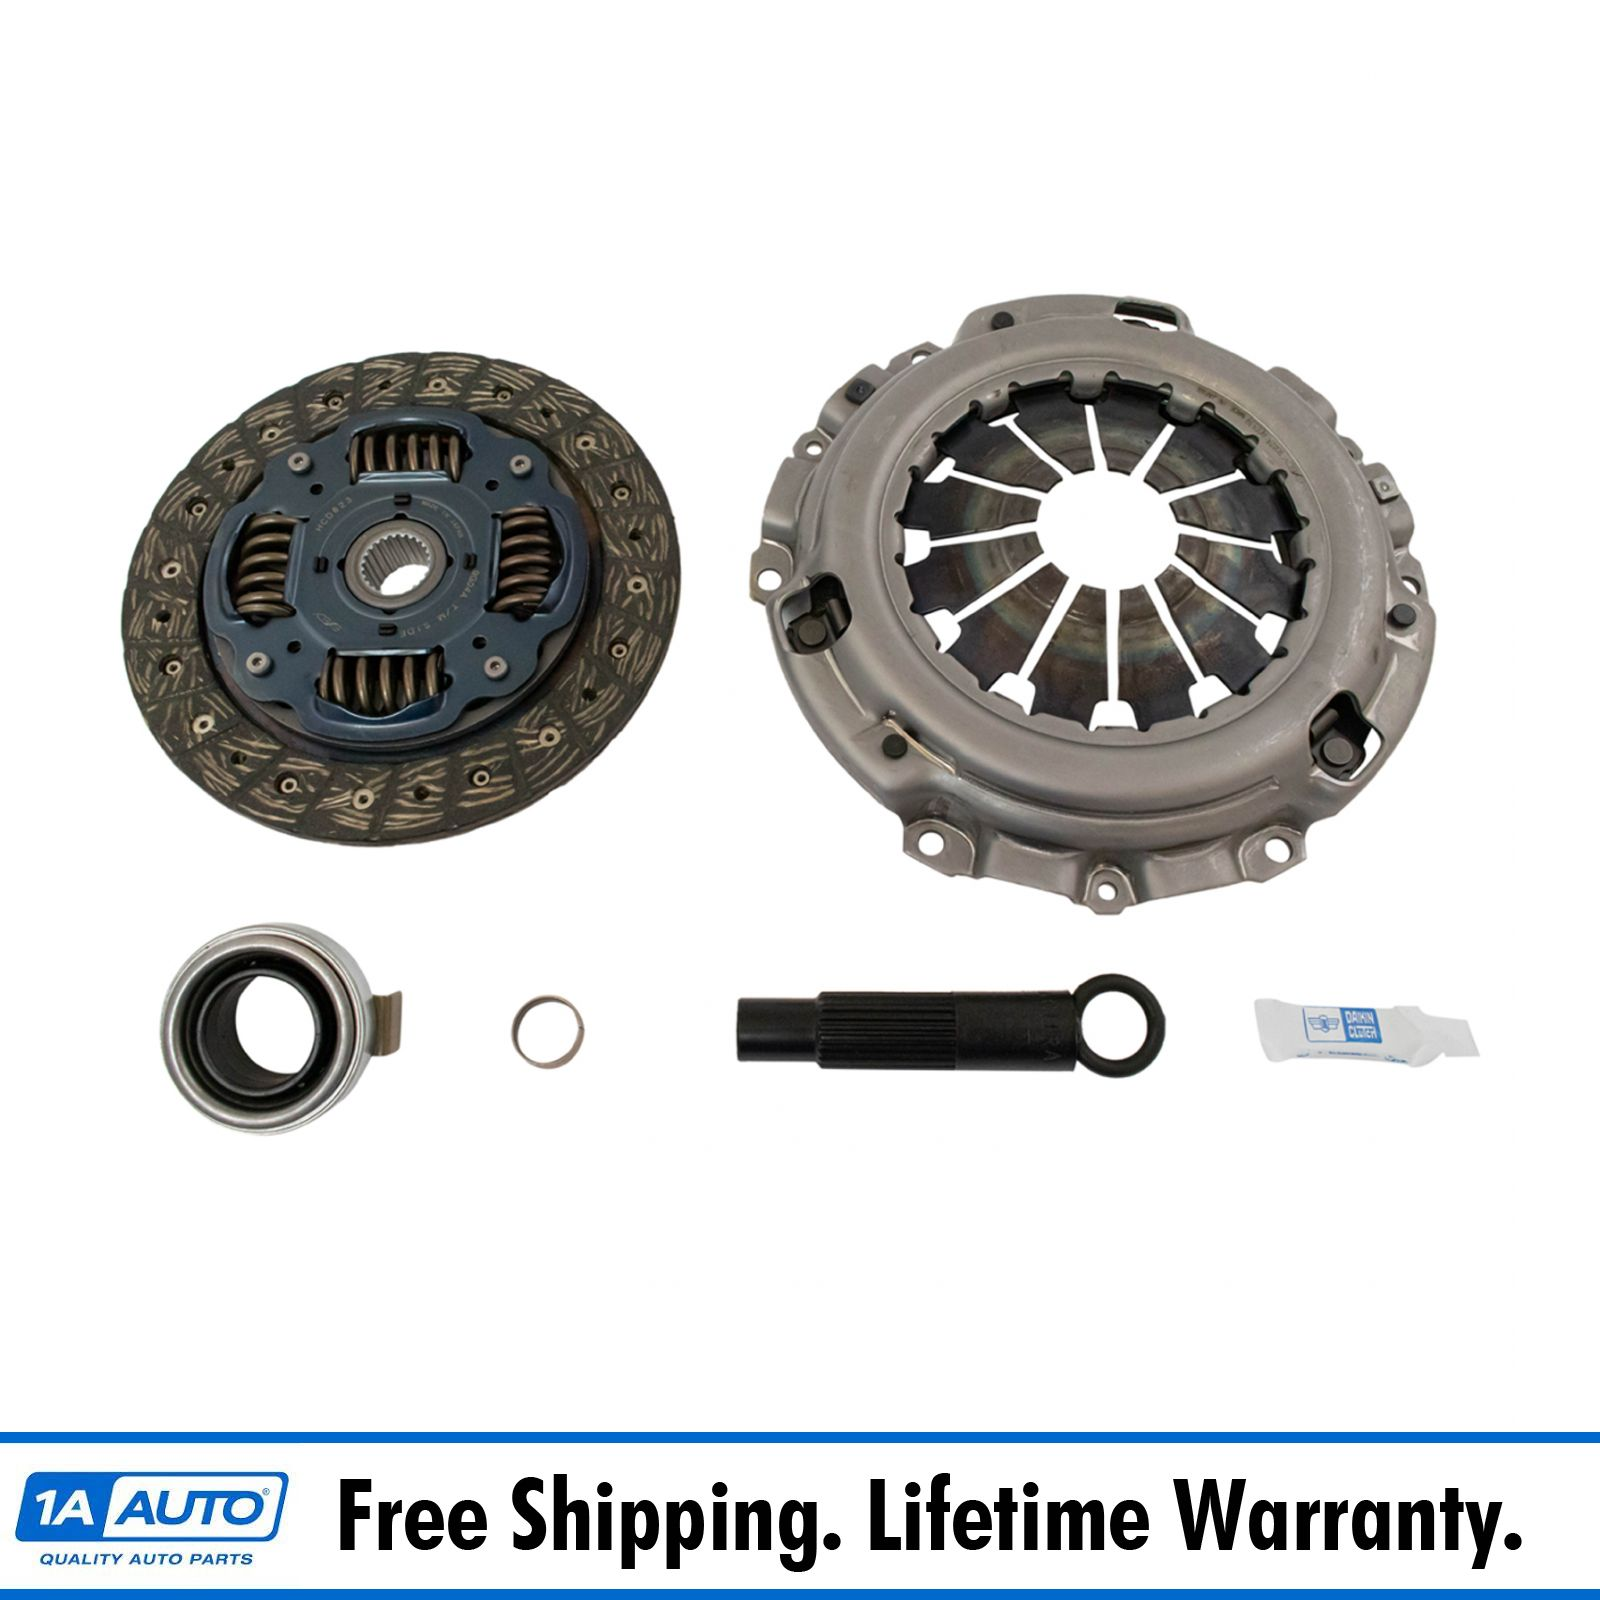 EXEDY Clutch Complete Kit Set For Acura RSX Honda Civic